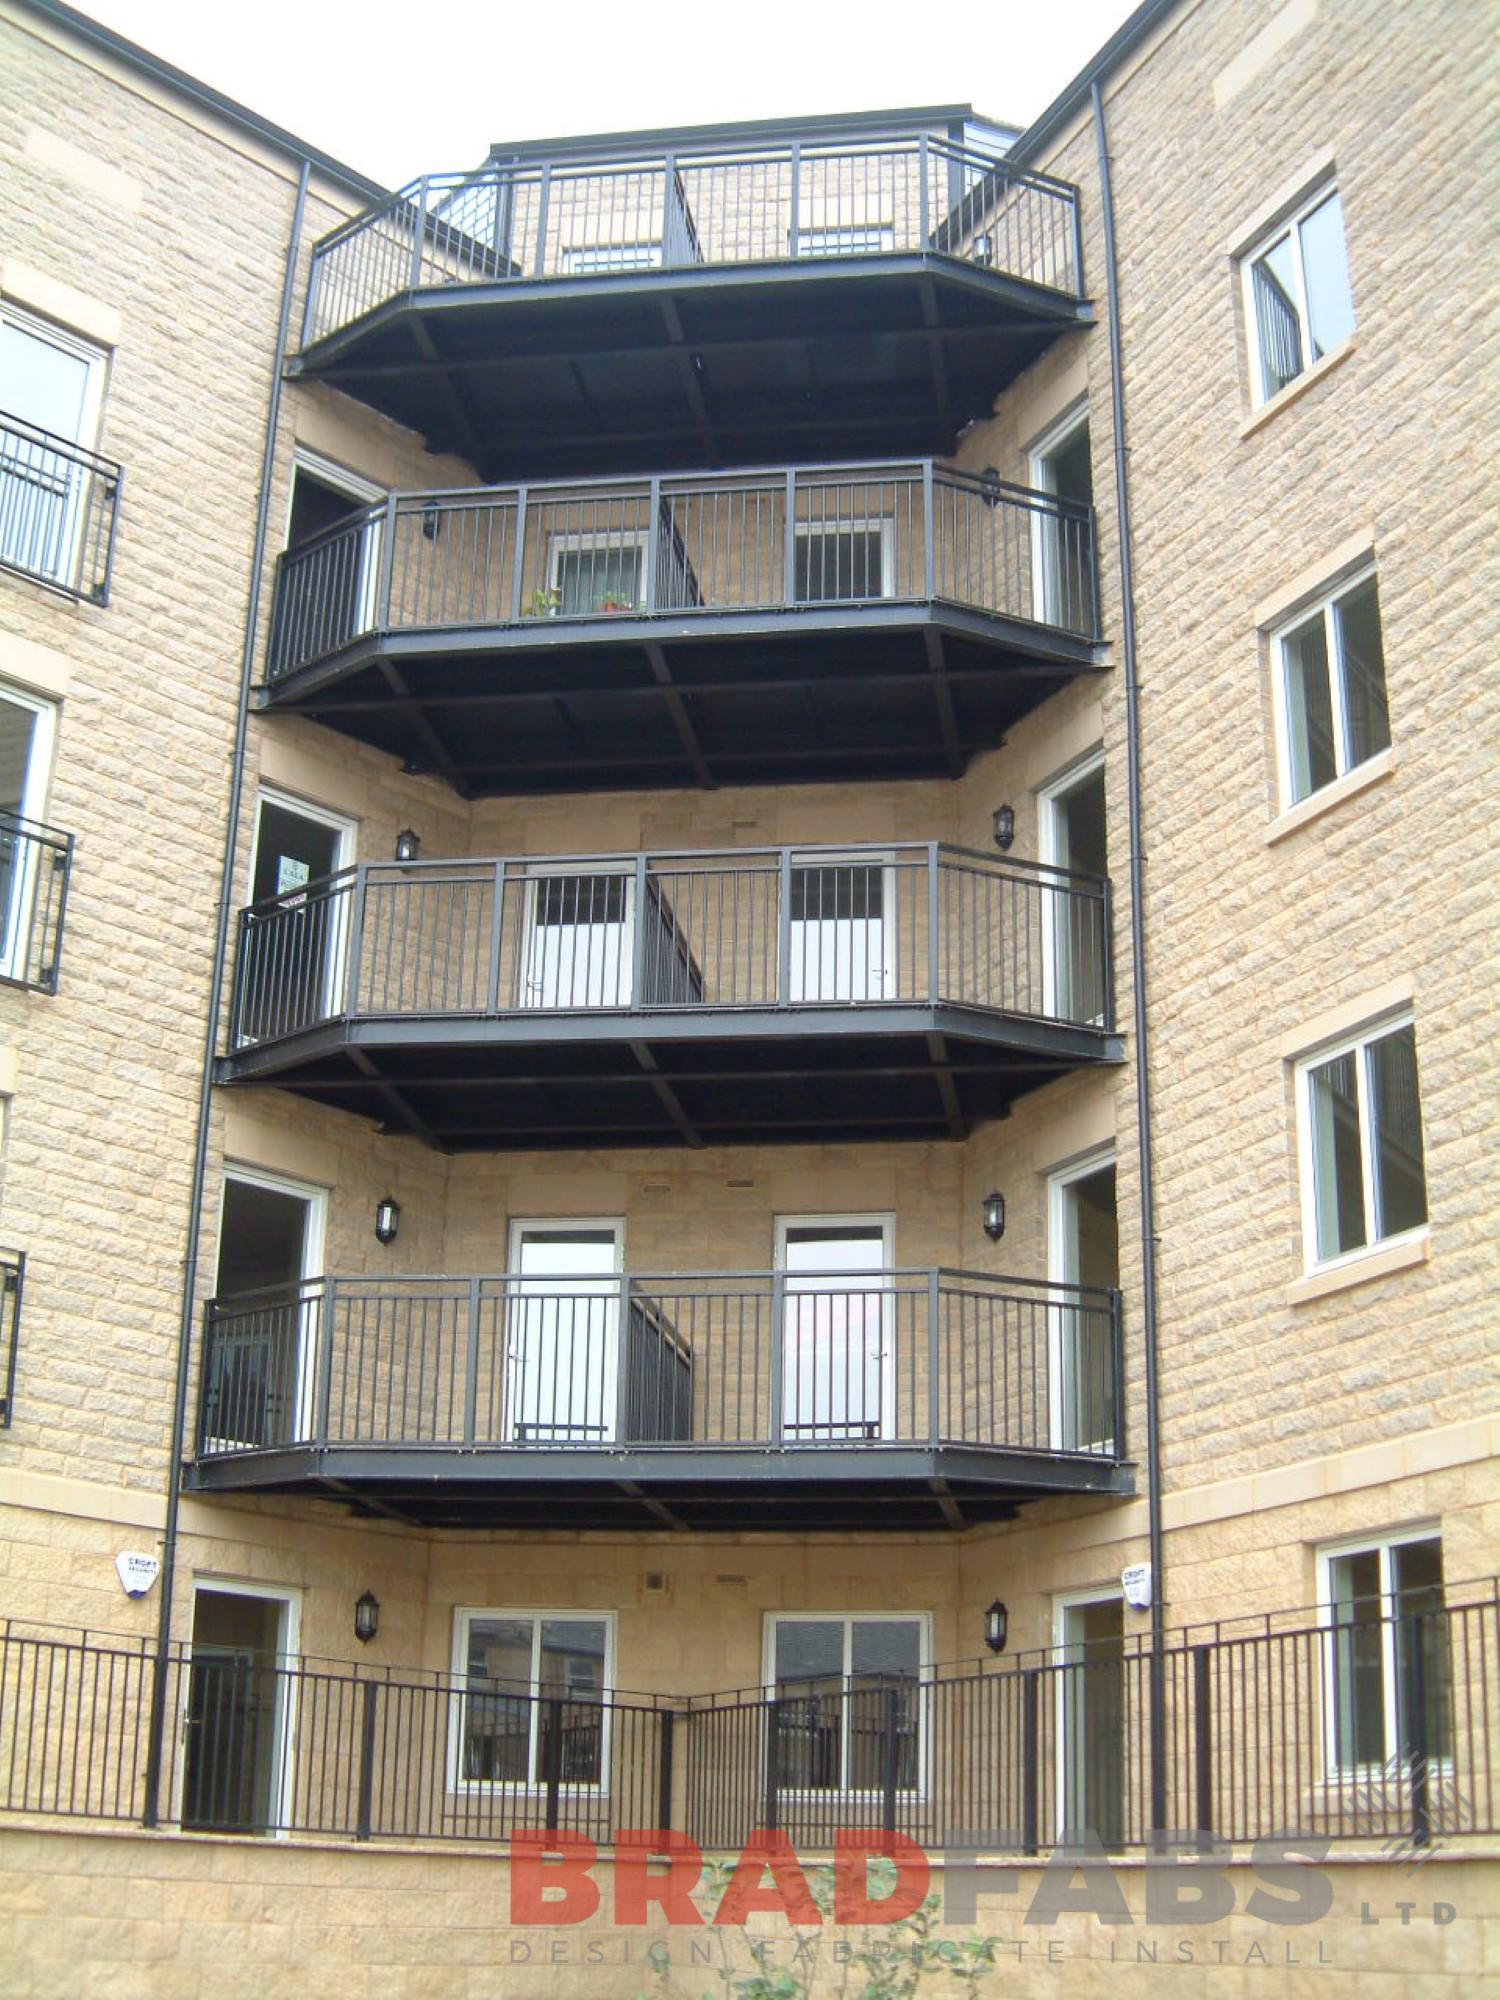 Set of four large balconies on a block of new flats, all manufactured in mild steel, galvanised and powder coated black with vertical bar balustrade and complete with composite decked flooring by Bradfabs